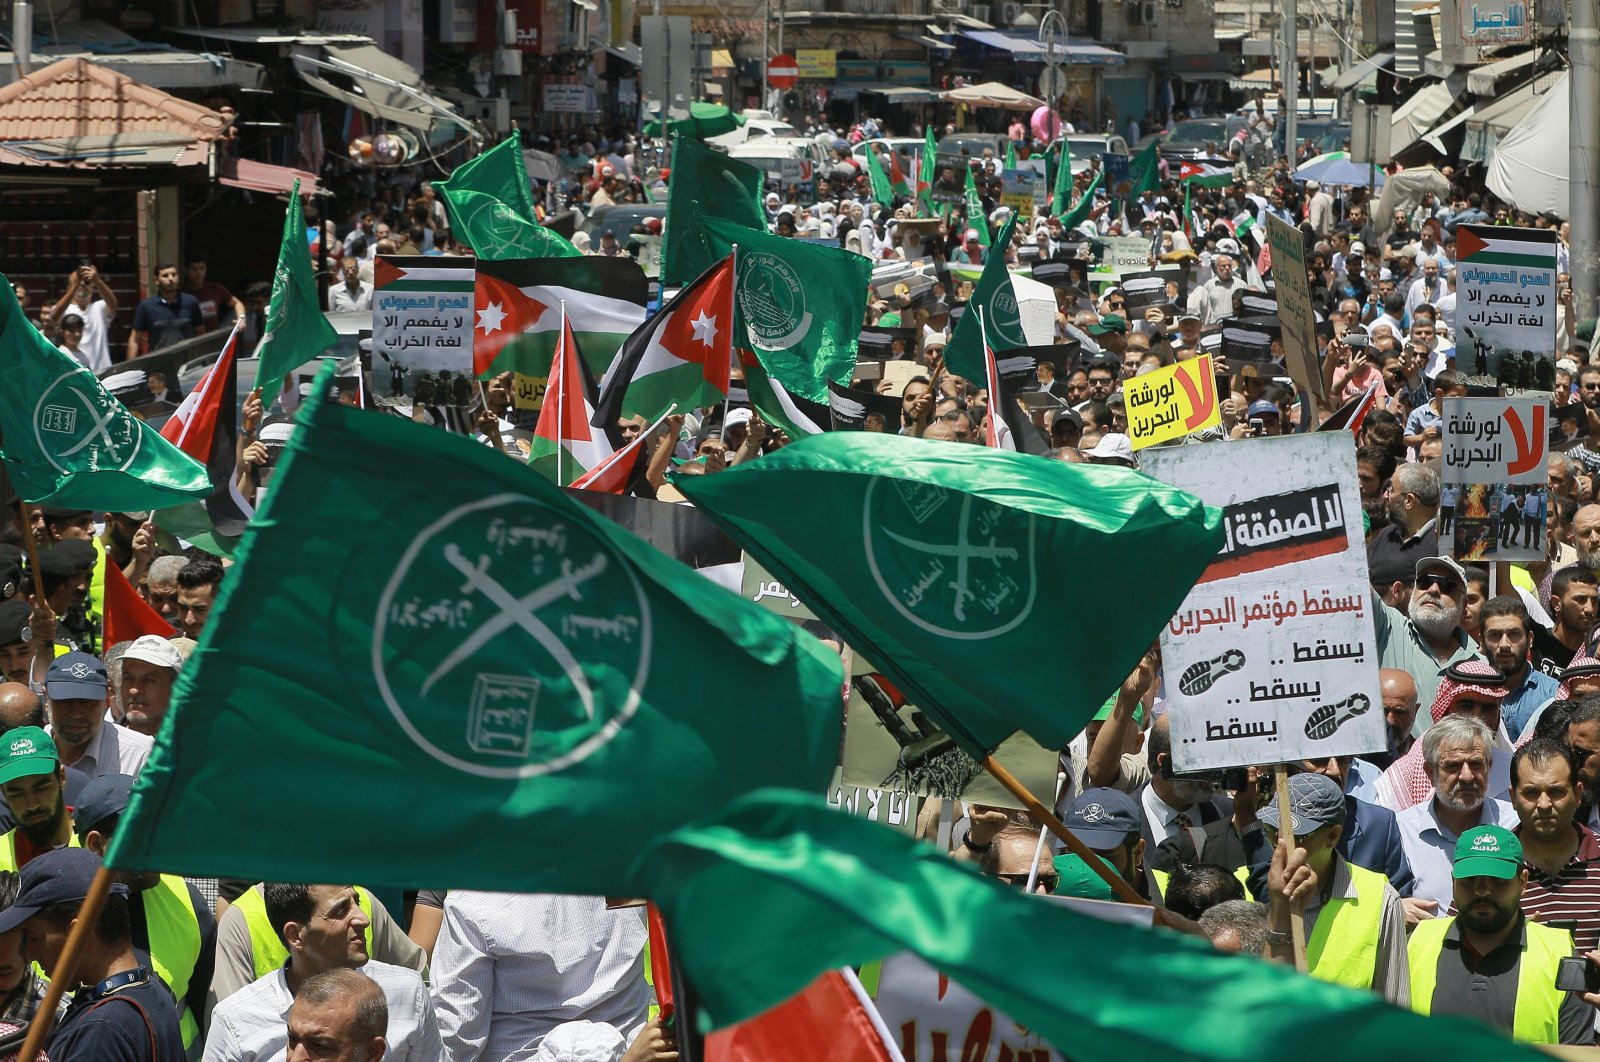 Jordanian flags, as well as flags of the Muslim Brotherhood and other political parties, are waved with other protest signs denouncing the U.S.-led Middle East economic conference in Bahrain, June 21, 2019. (AFP Photo)